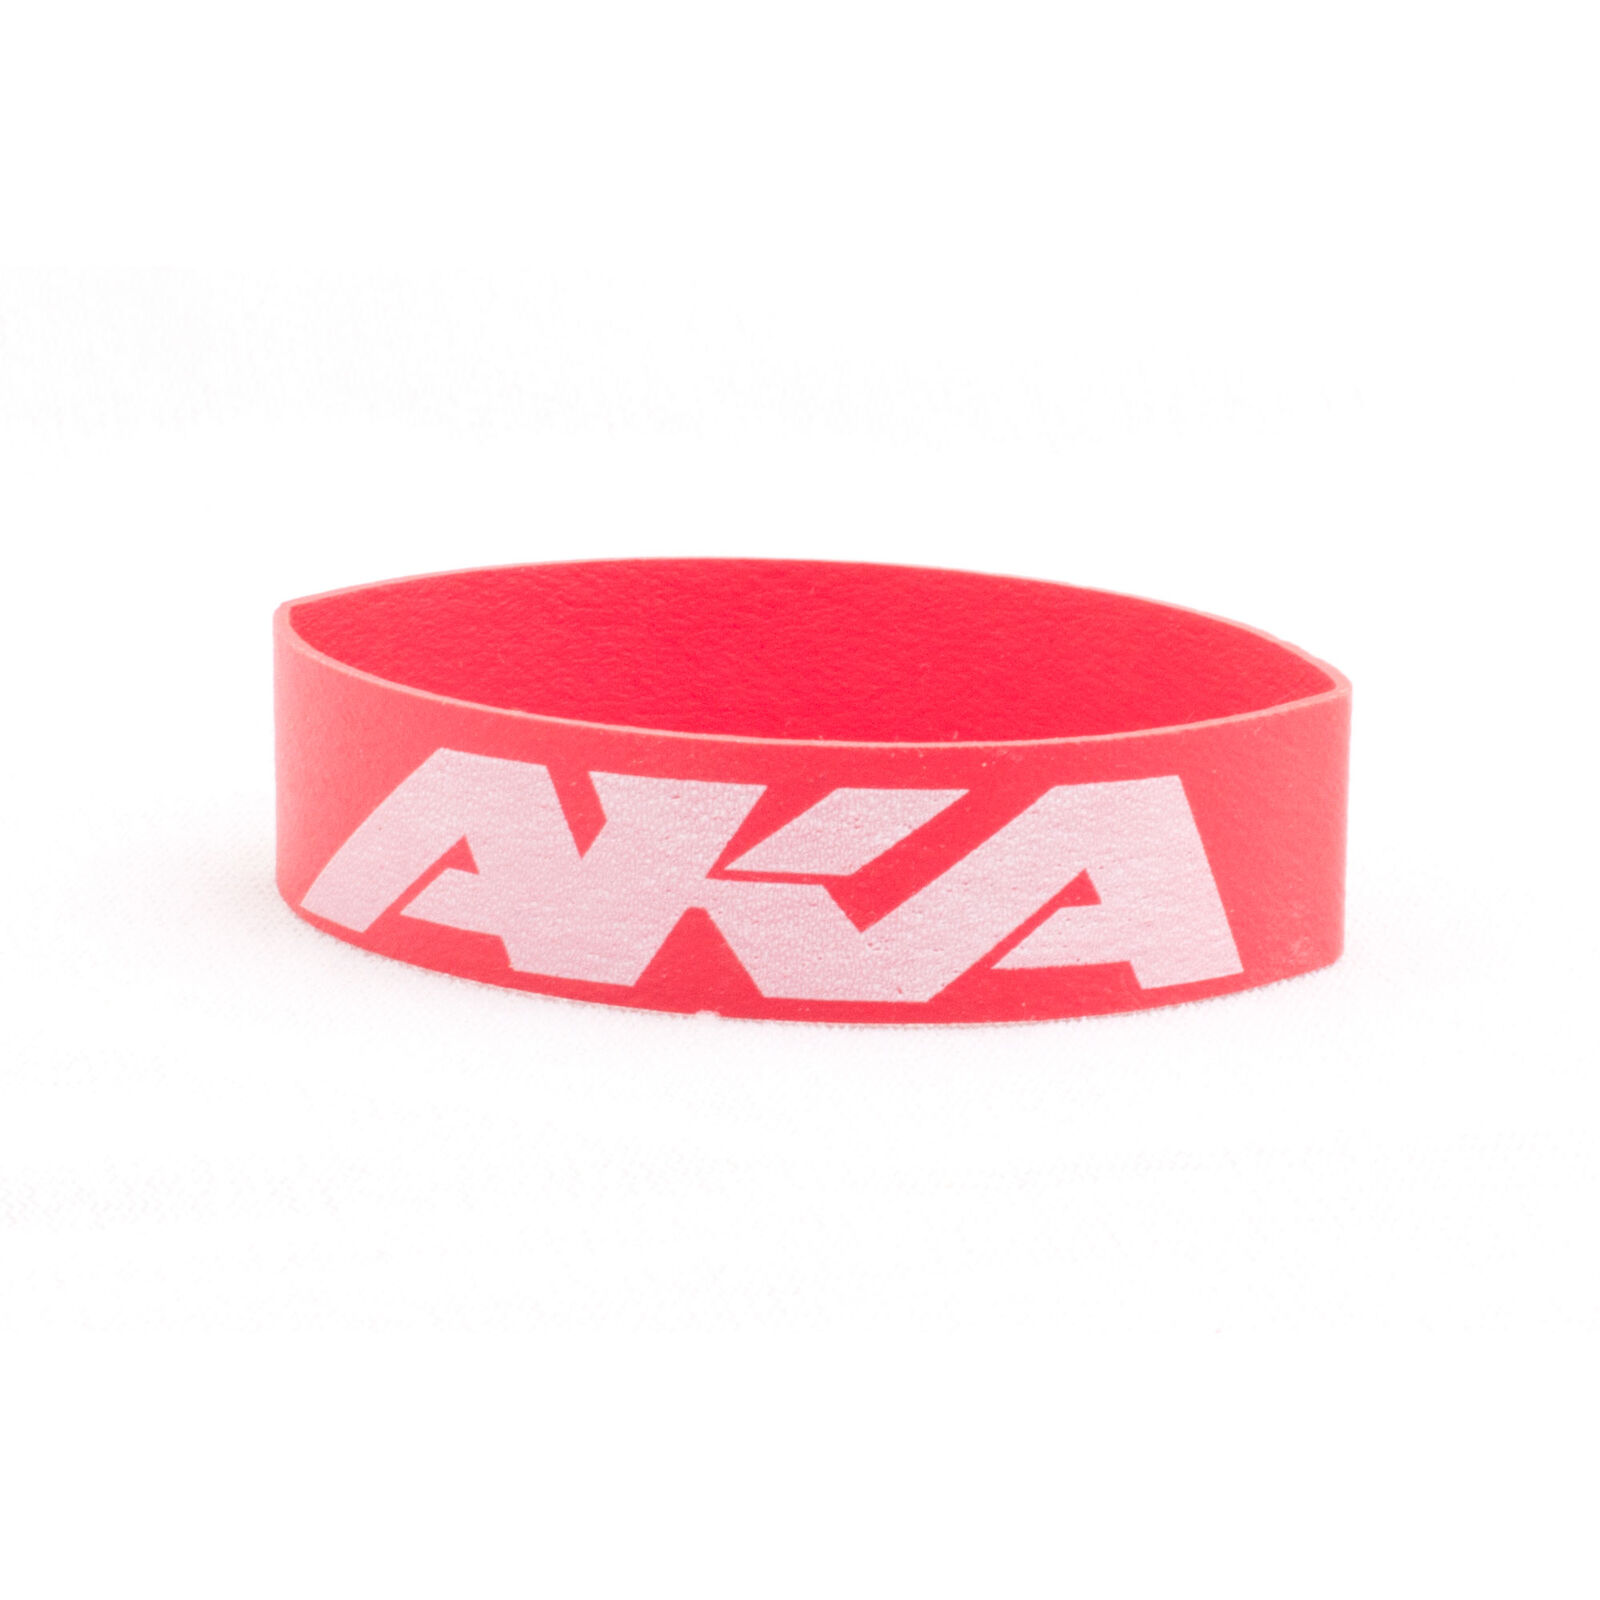 Tire Mounting Bands (8)